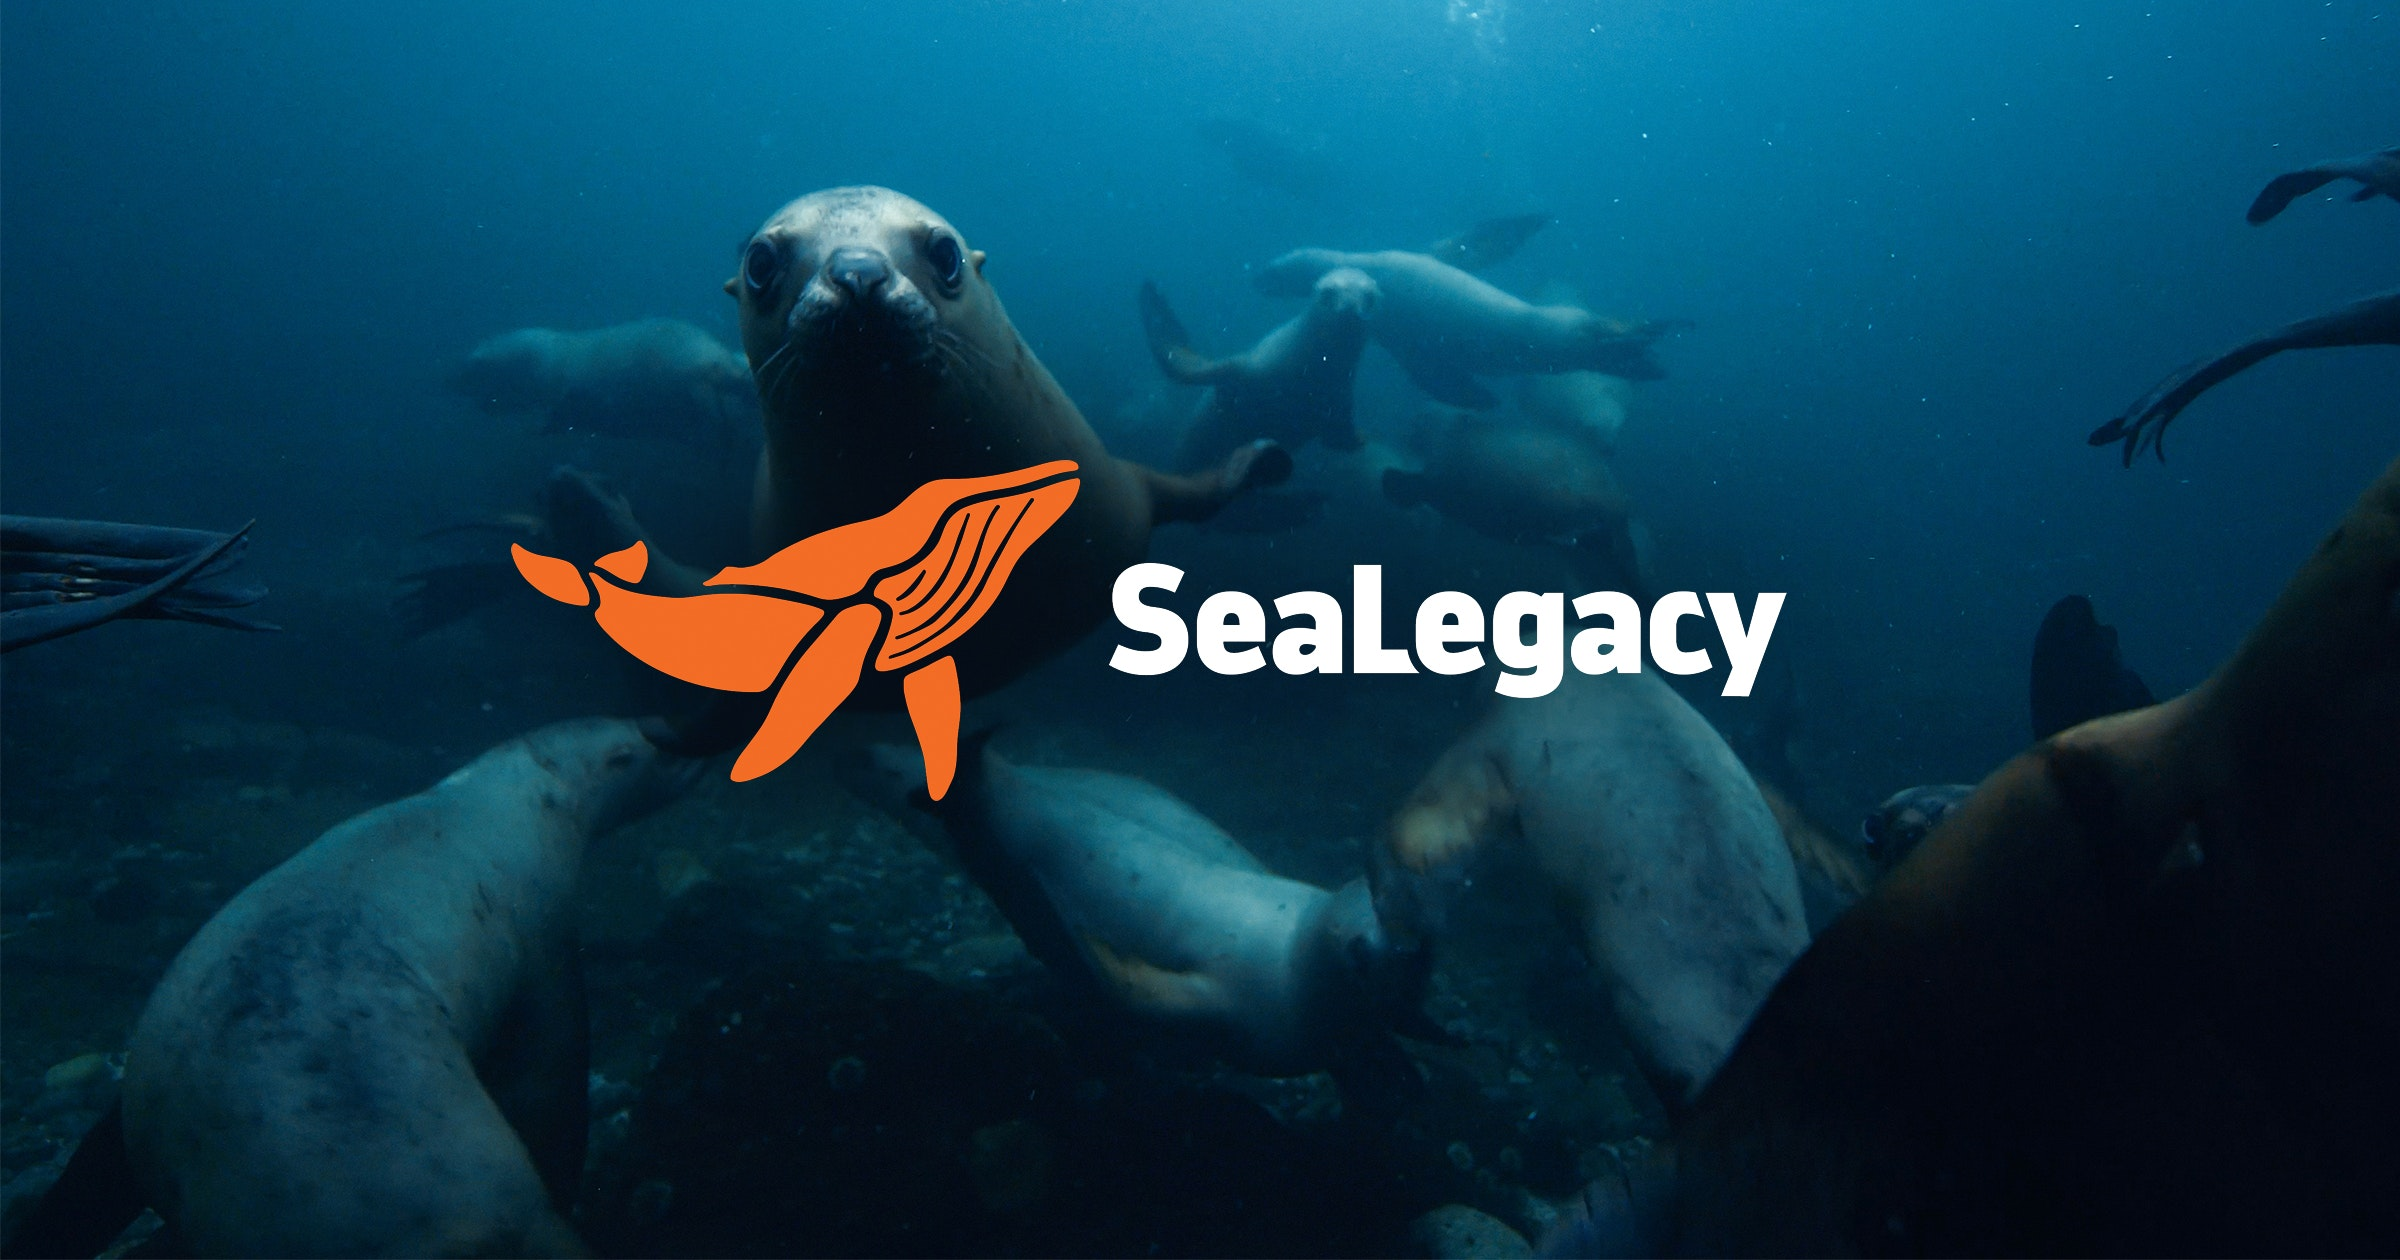 SEA LEGACY - When you choose to donate to Sea Legacy, your money goes towards helping a team of artists promote environmental change in our oceans. This program is founded by National Geographic photographer, Paul Nicklen, and his partner, Cristina Mittermeier who believe the most powerful way to create change is through visual storytelling. They are focused on creating a healthy ocean for all of the animals inside of it.